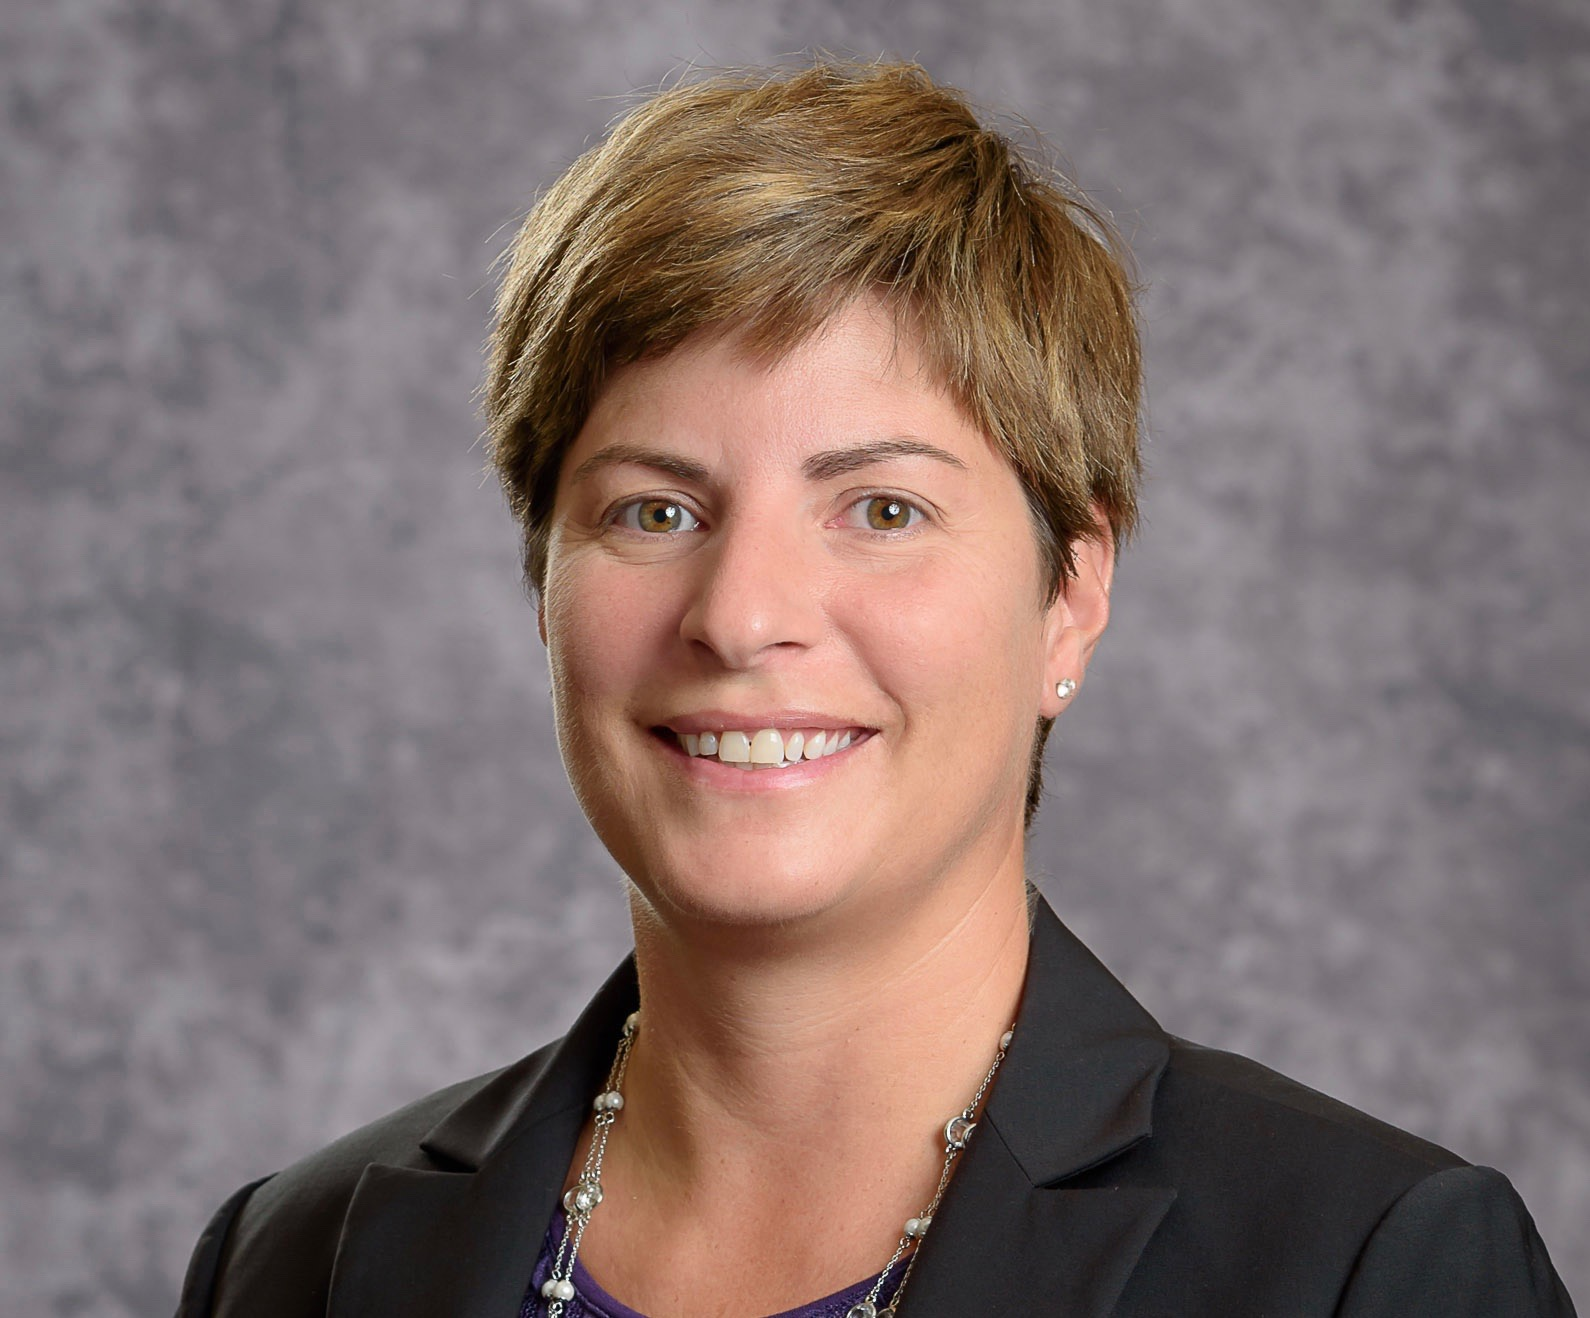 Head shot of Eve Claar, Pioneer High School Athletic Director